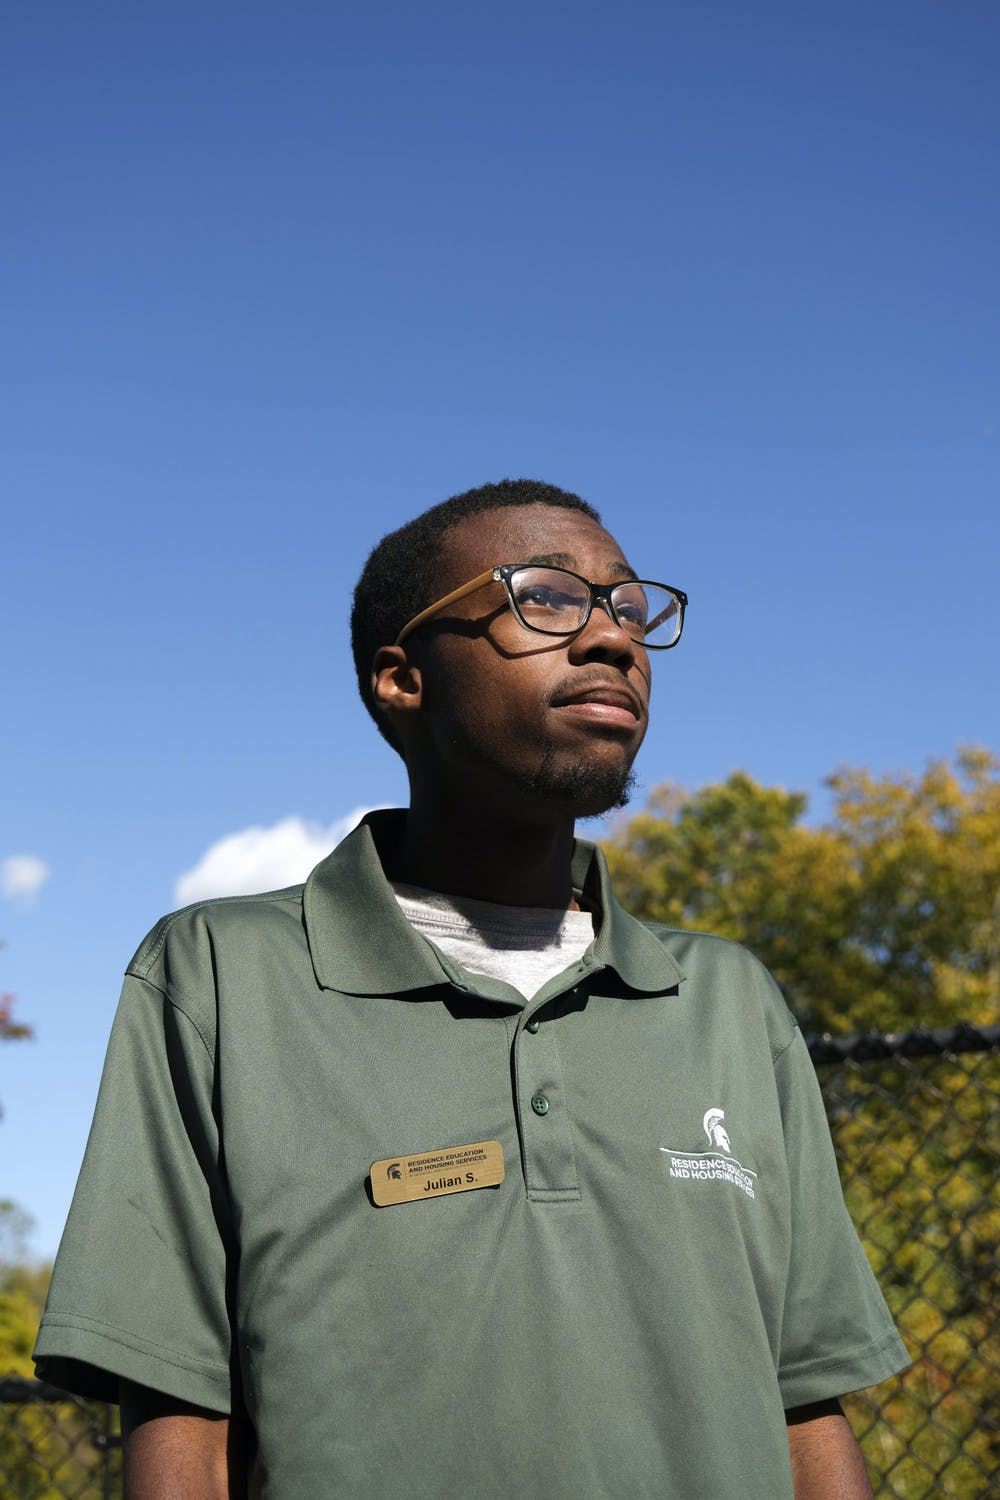 <p>Julian Stainback, a media and information and journalism major from Detroit, Michigan, pictured on October 8, 2020.</p>